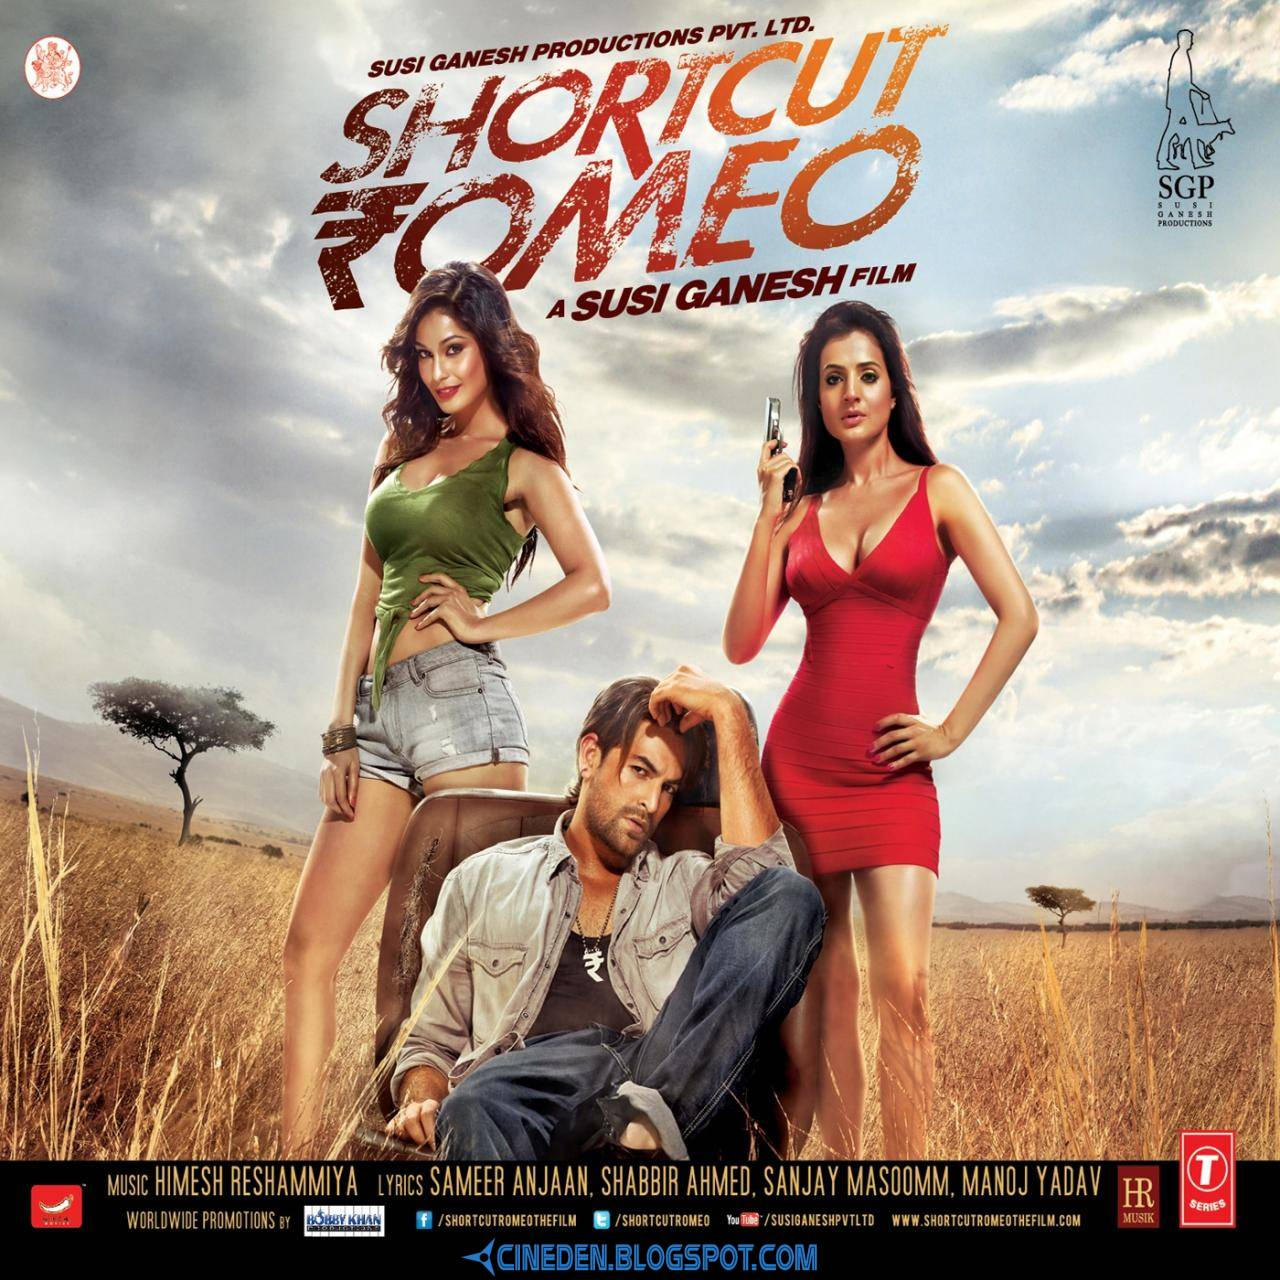 Shortcut Romeo (2013) - Hindi Movie Review